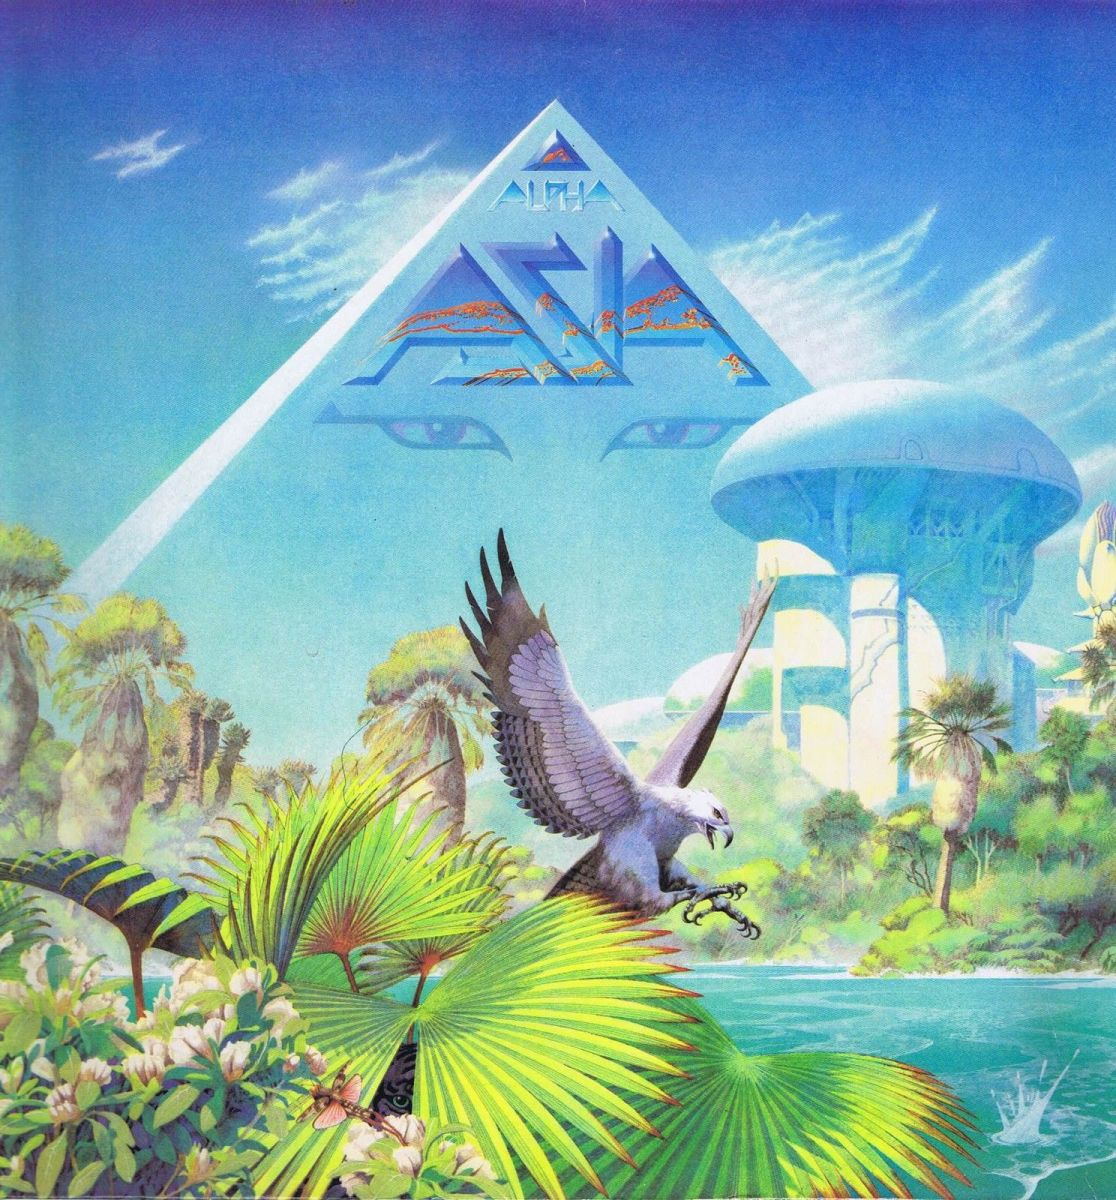 Album Cover Art By Roger Dean Hubpages